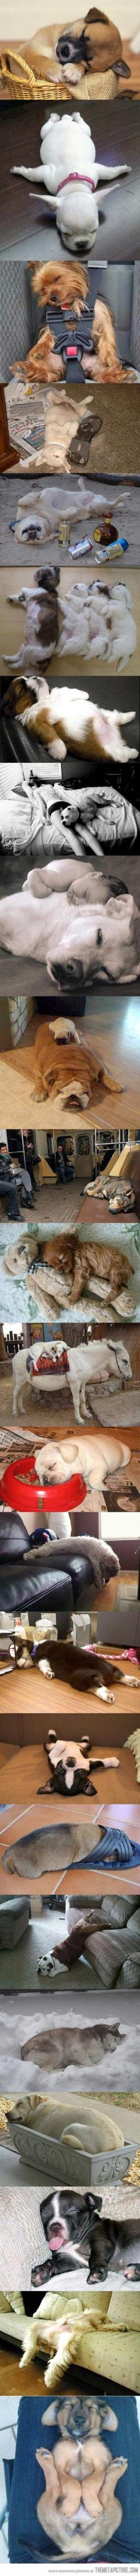 Sleep Attack…and then people wonder why we are totally in love with our dogs....: Doggie, Sleeping Dogs, Animals, Pet, Sleepy Puppies, Puppys, Baby, Sleep Attack, Sleeping Puppies